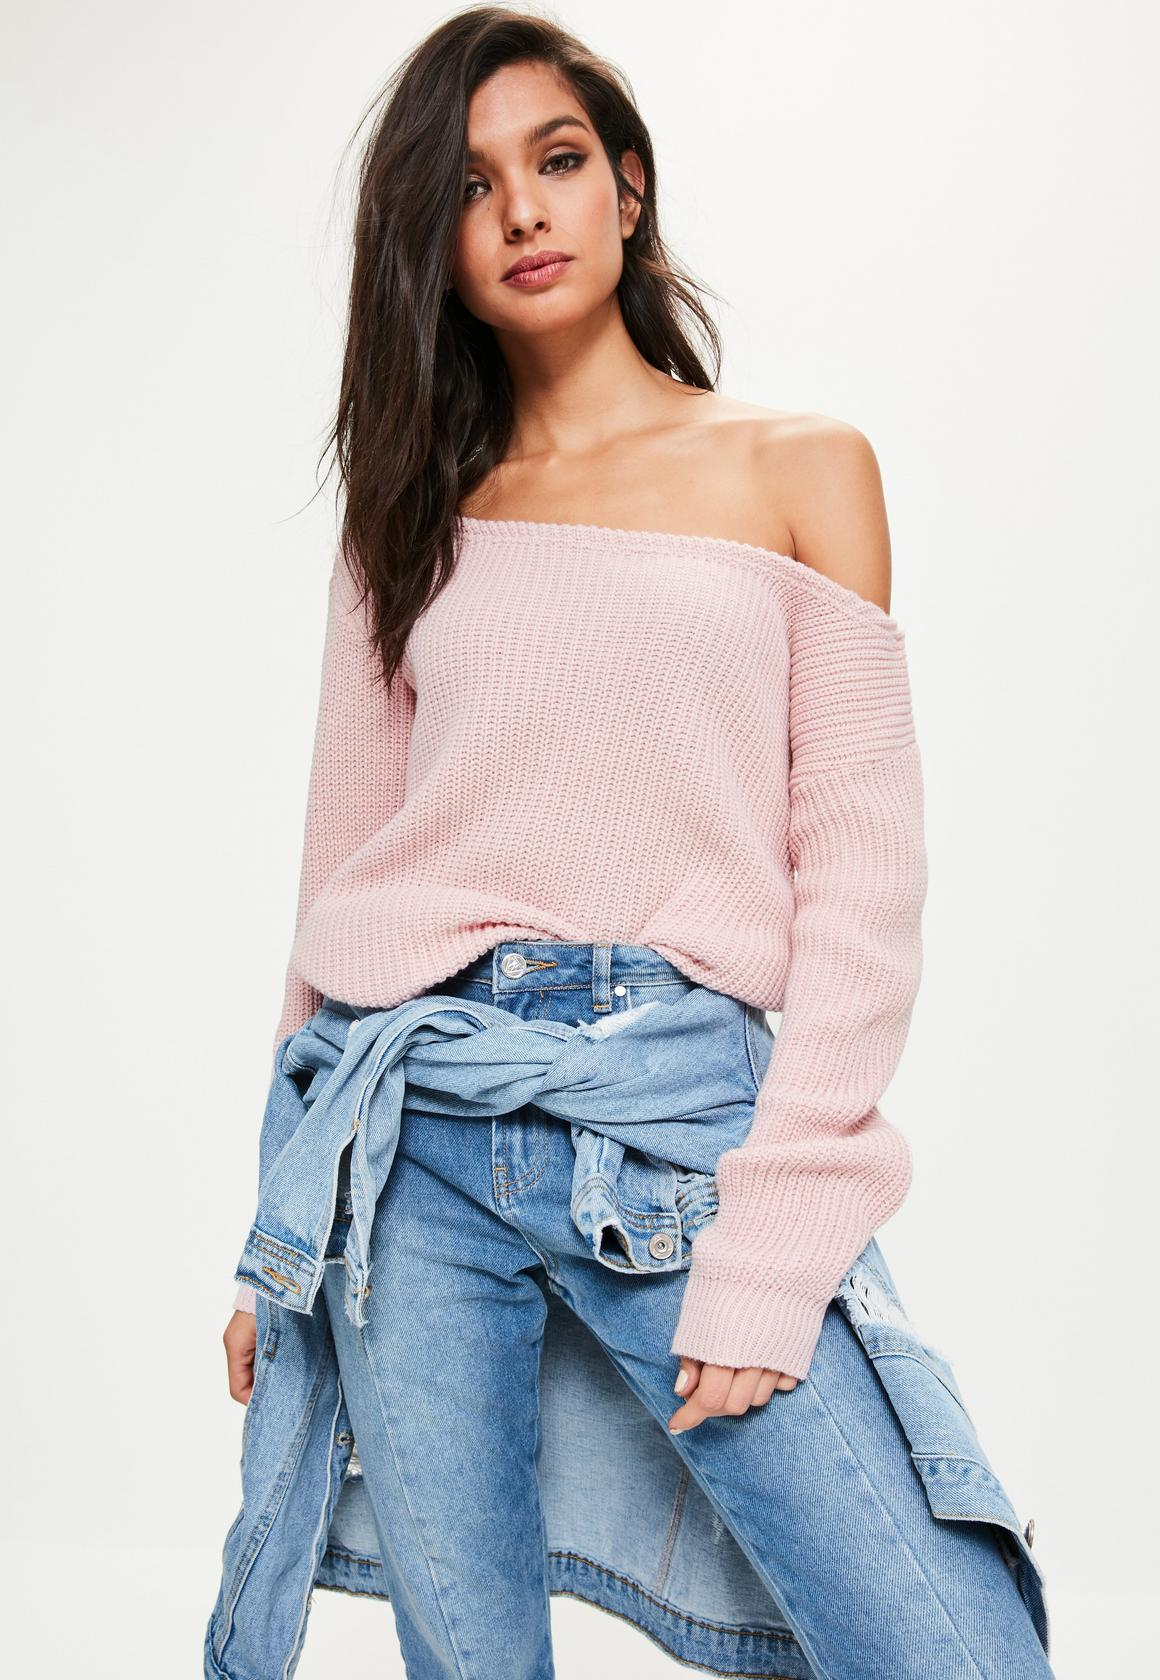 Staying warm and stylish during winter: off the shoulder sweater